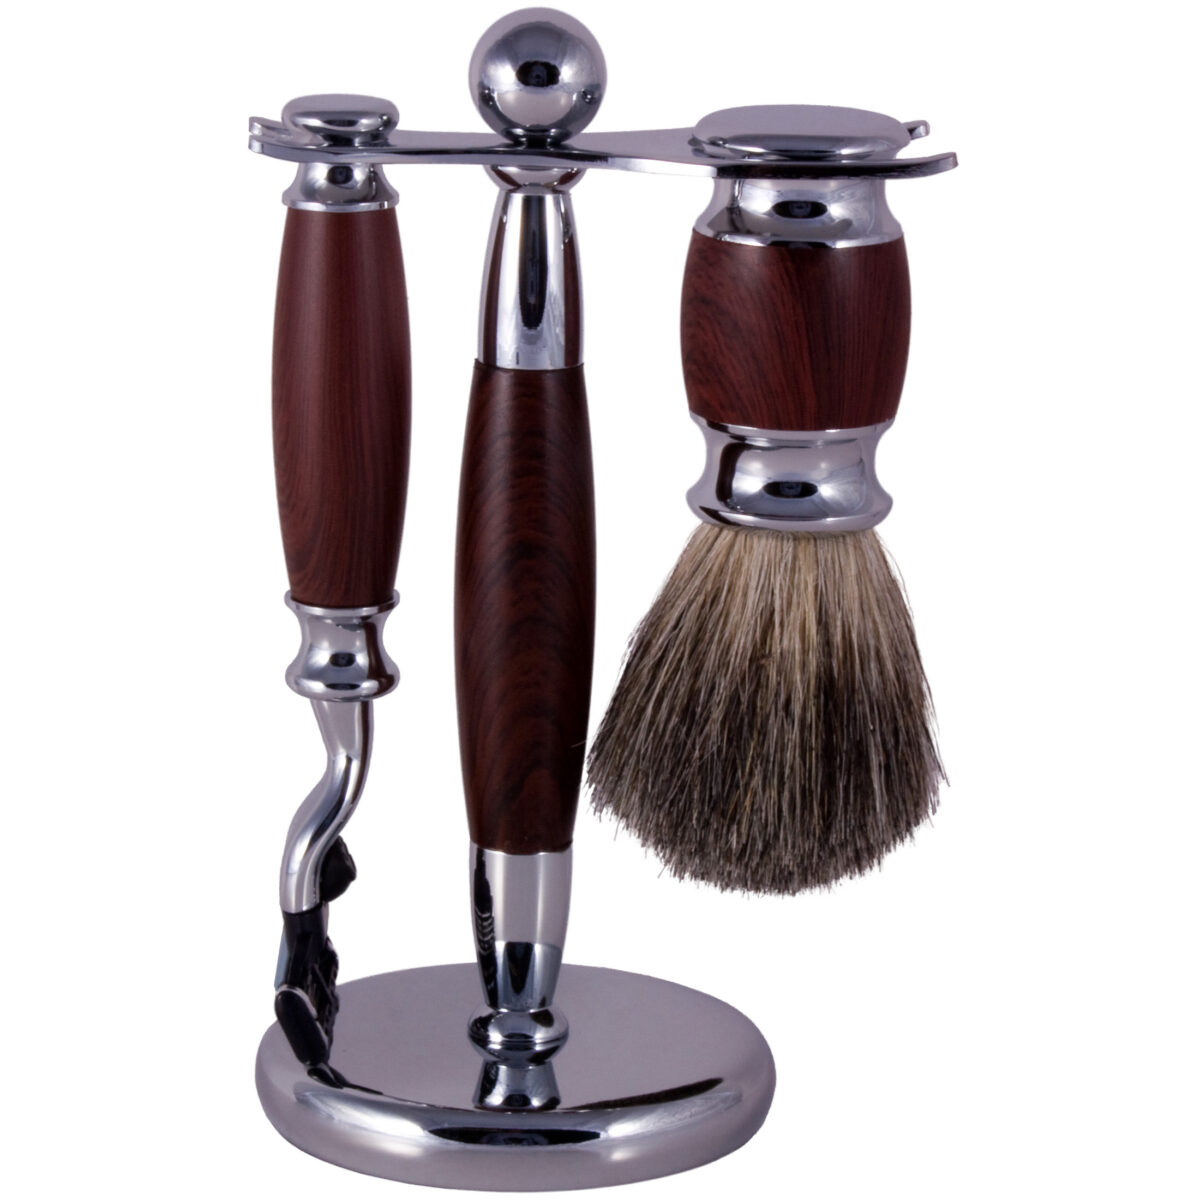 3 peice shaving set